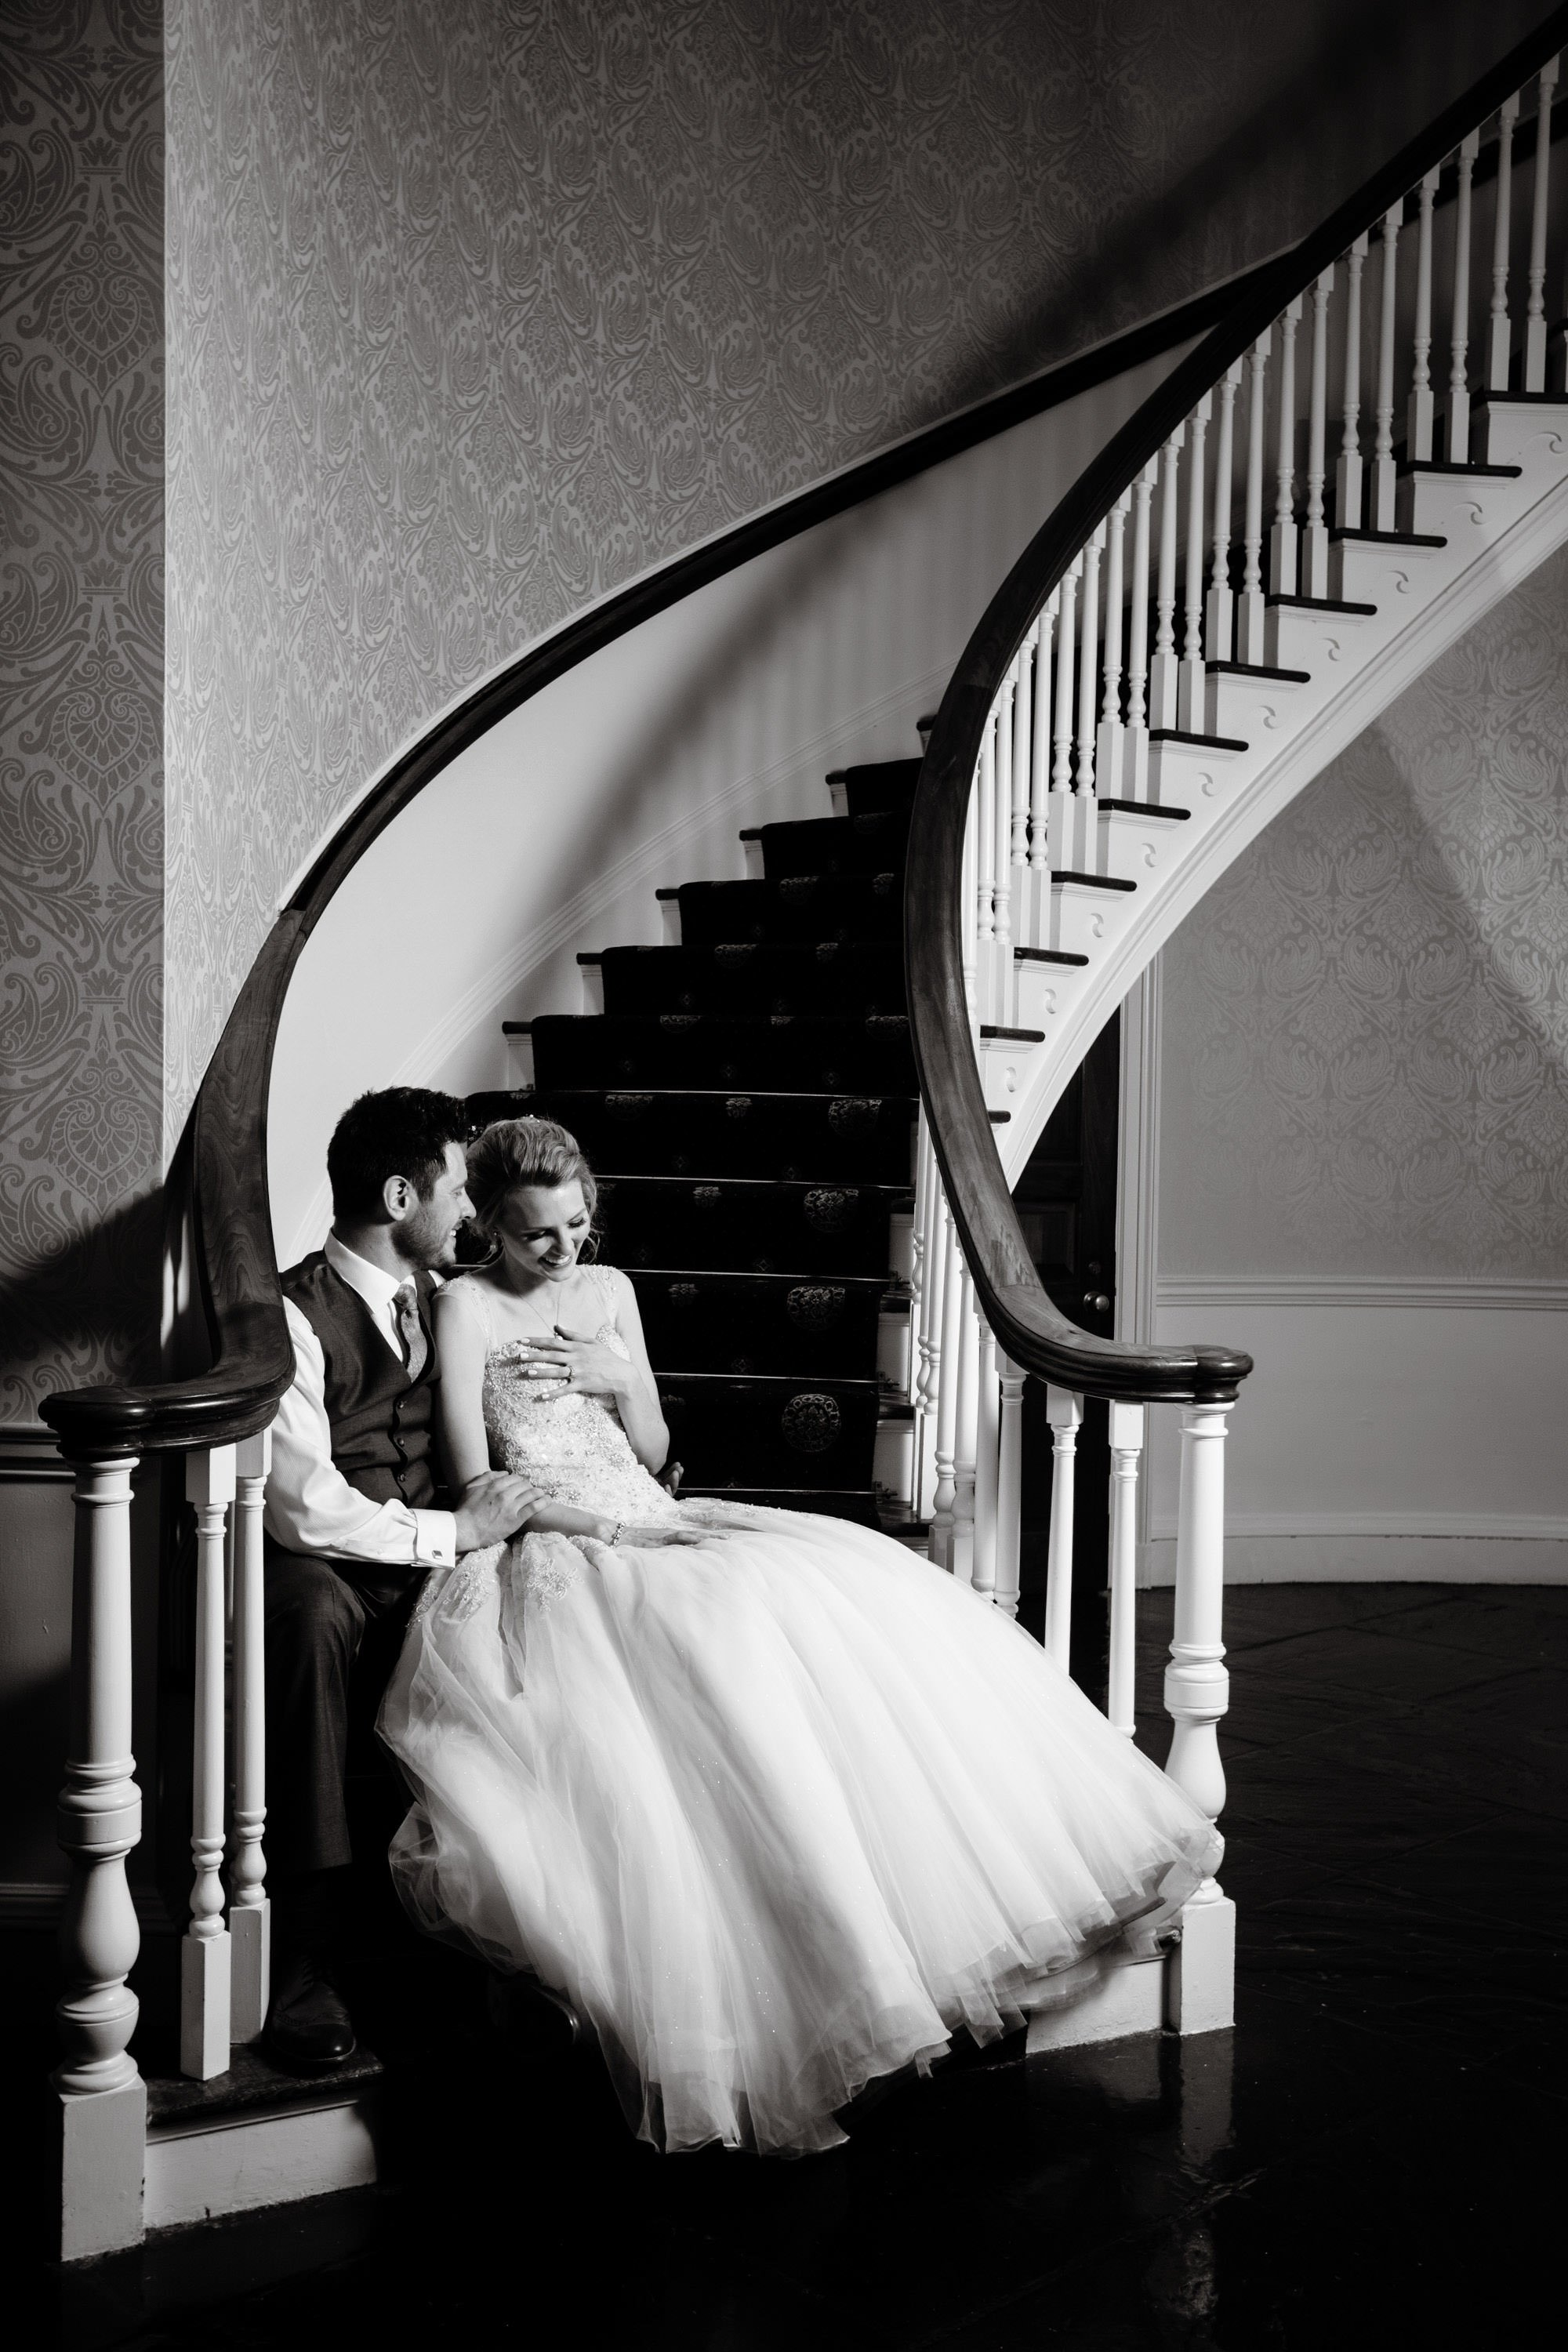 The bride and groom pose for a portrait on the stairs of the Tidewater Inn during their wedding reception.